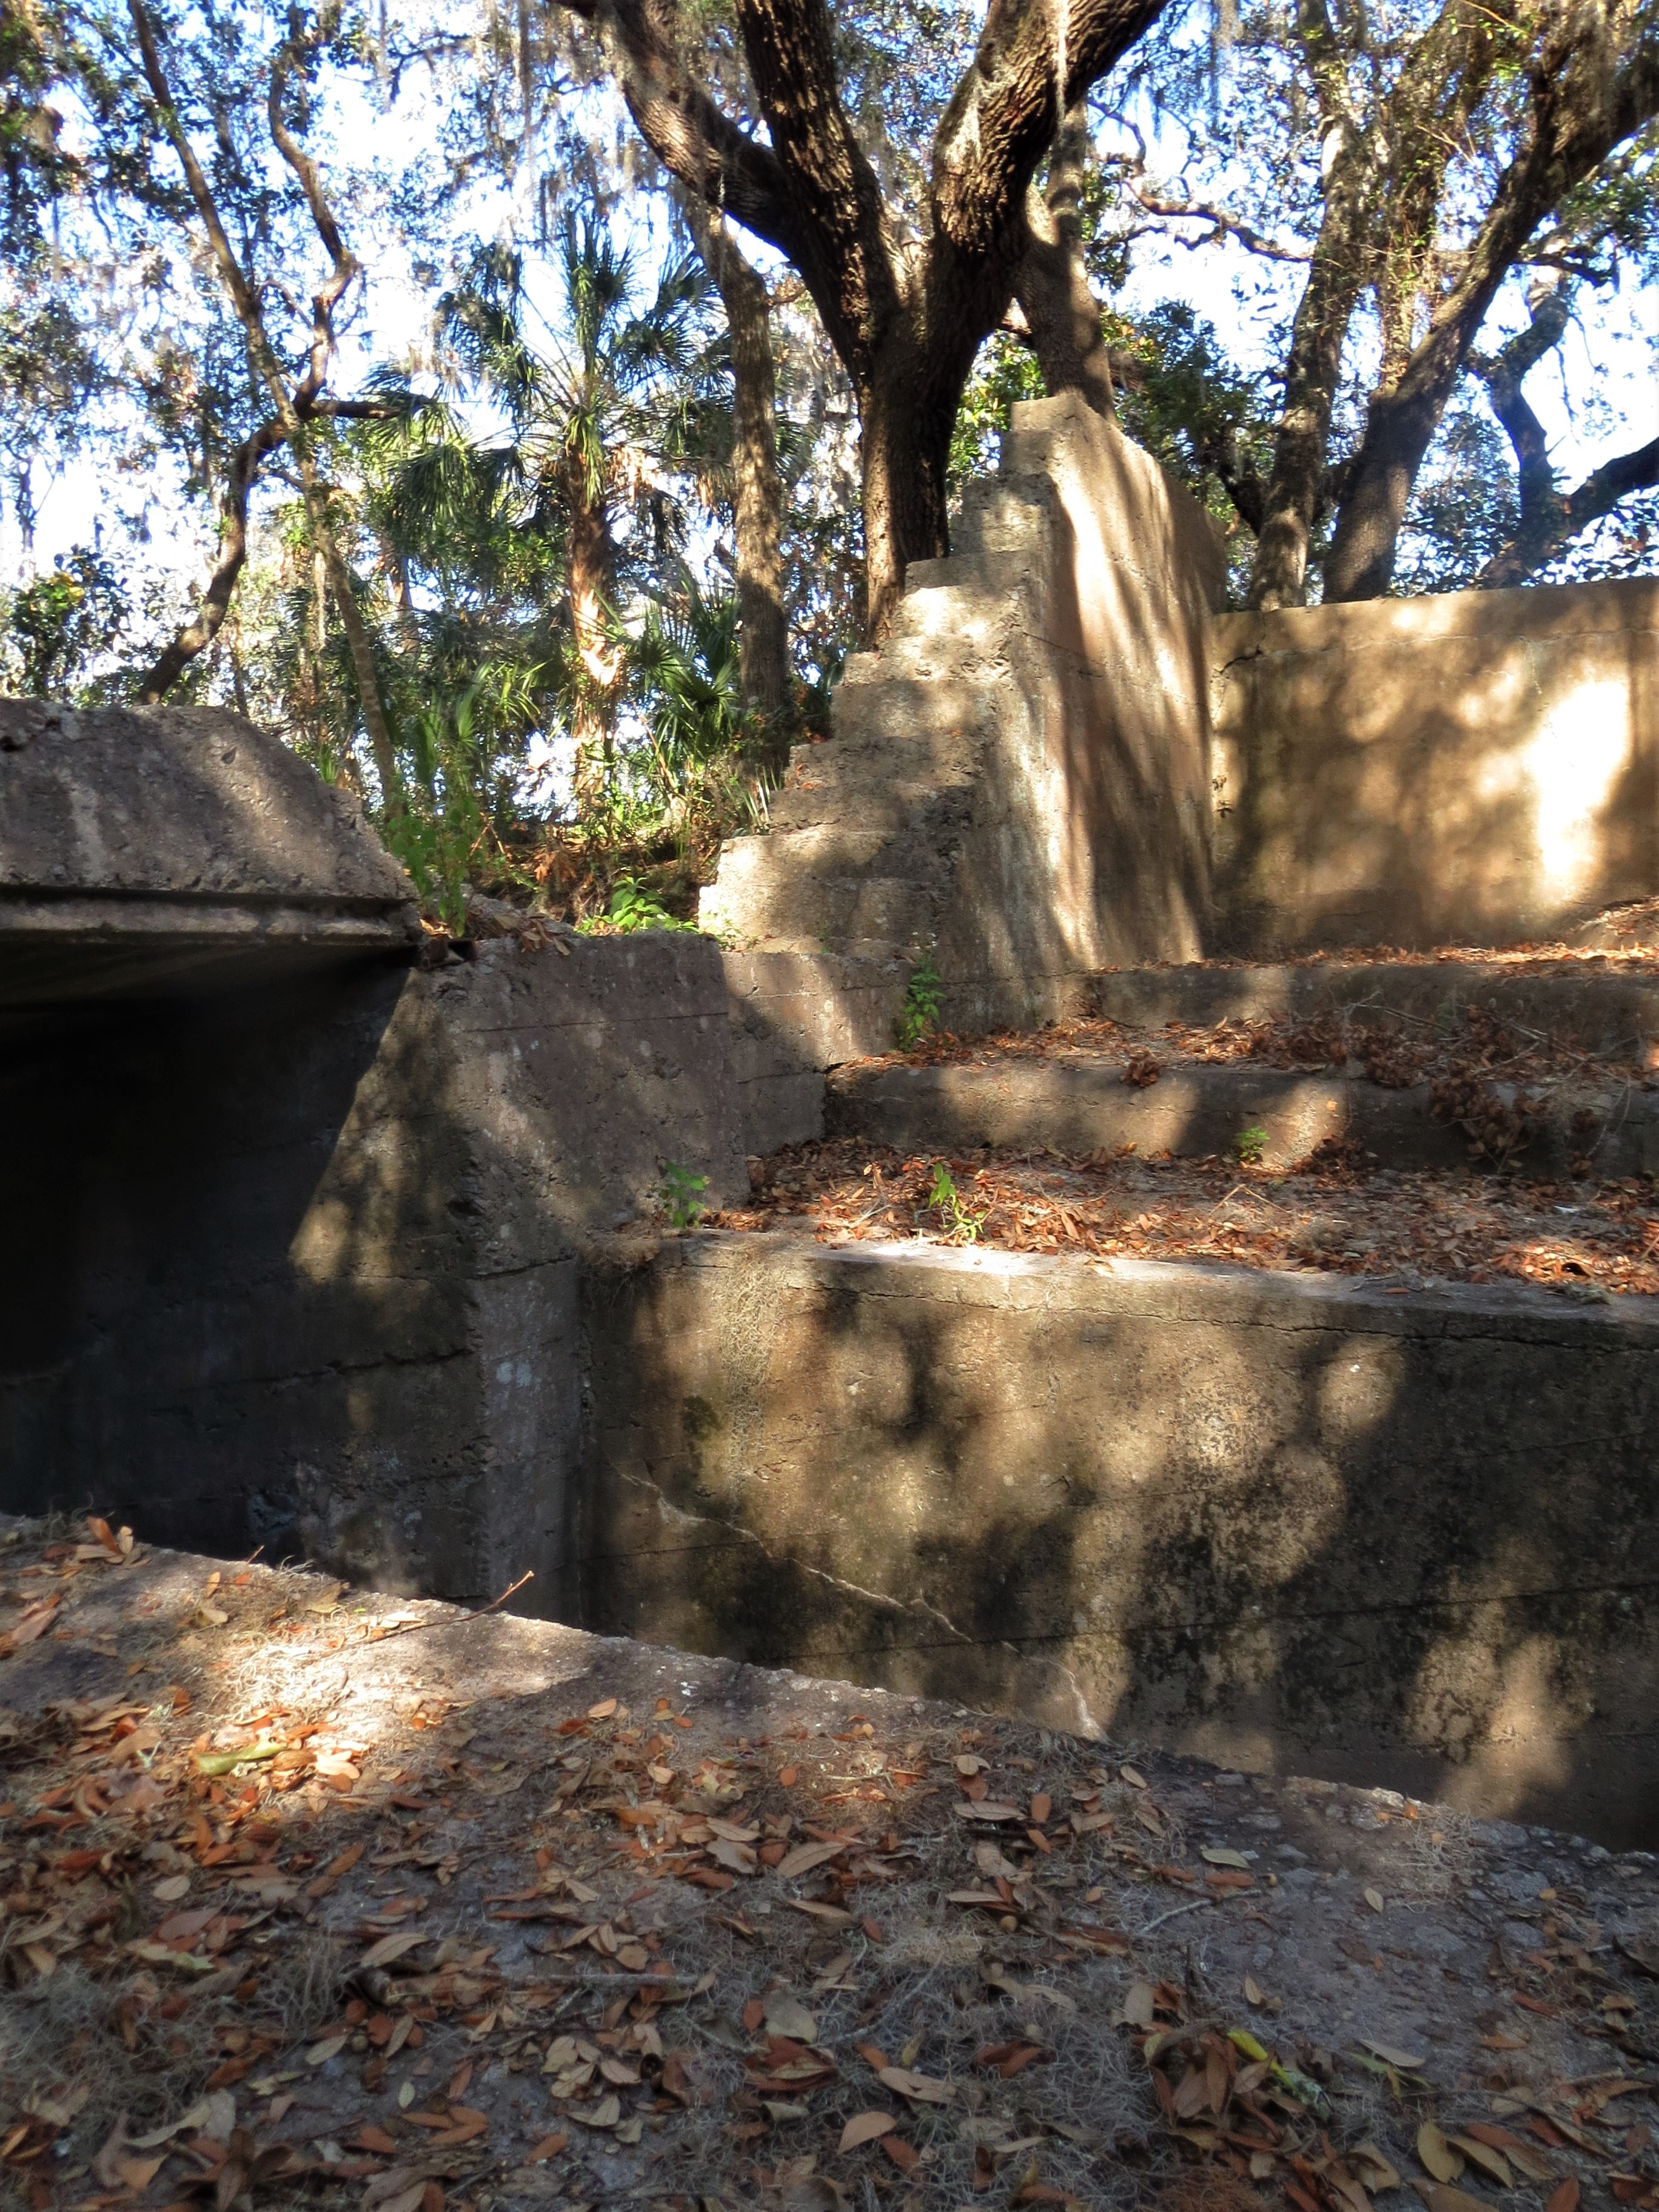 Fort Caroline: Spanish American War Battery | jaxpsychogeo